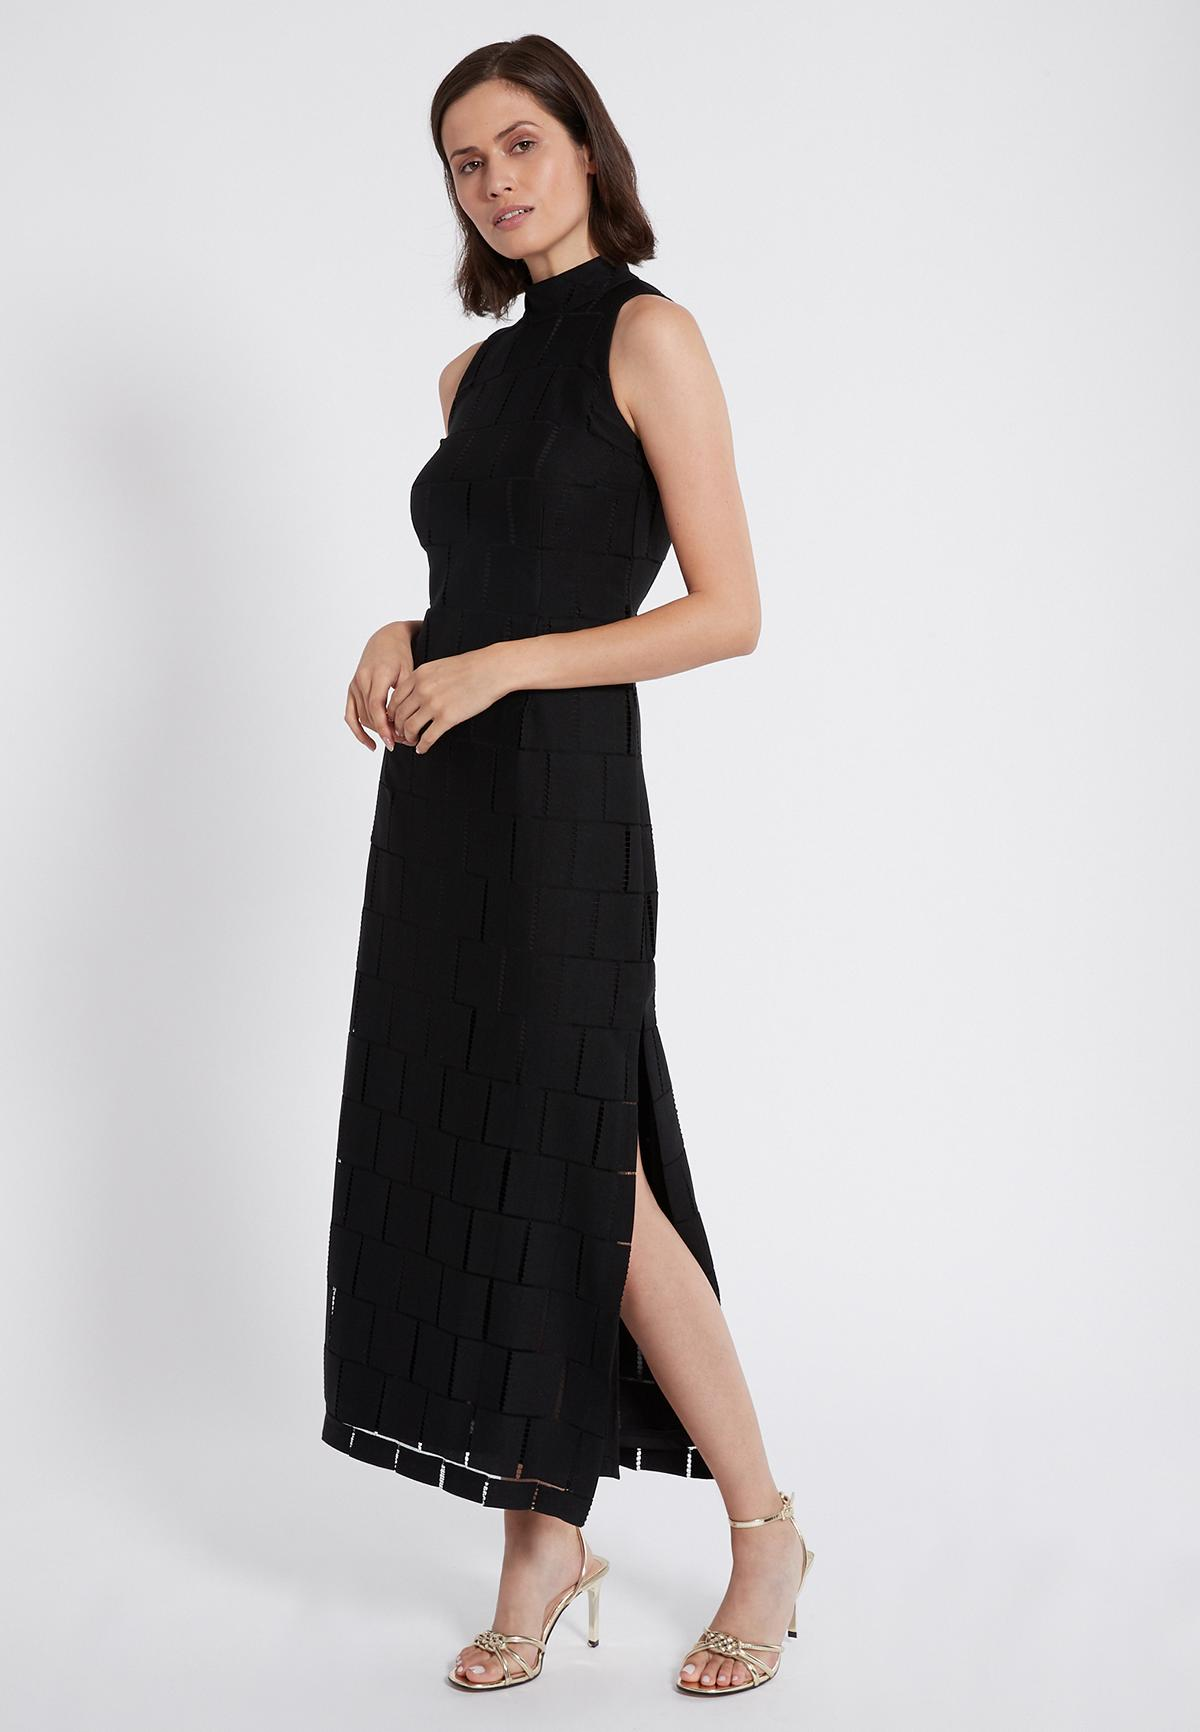 Front of Ana Alcazar Maxi Dress Samita Black  worn by model